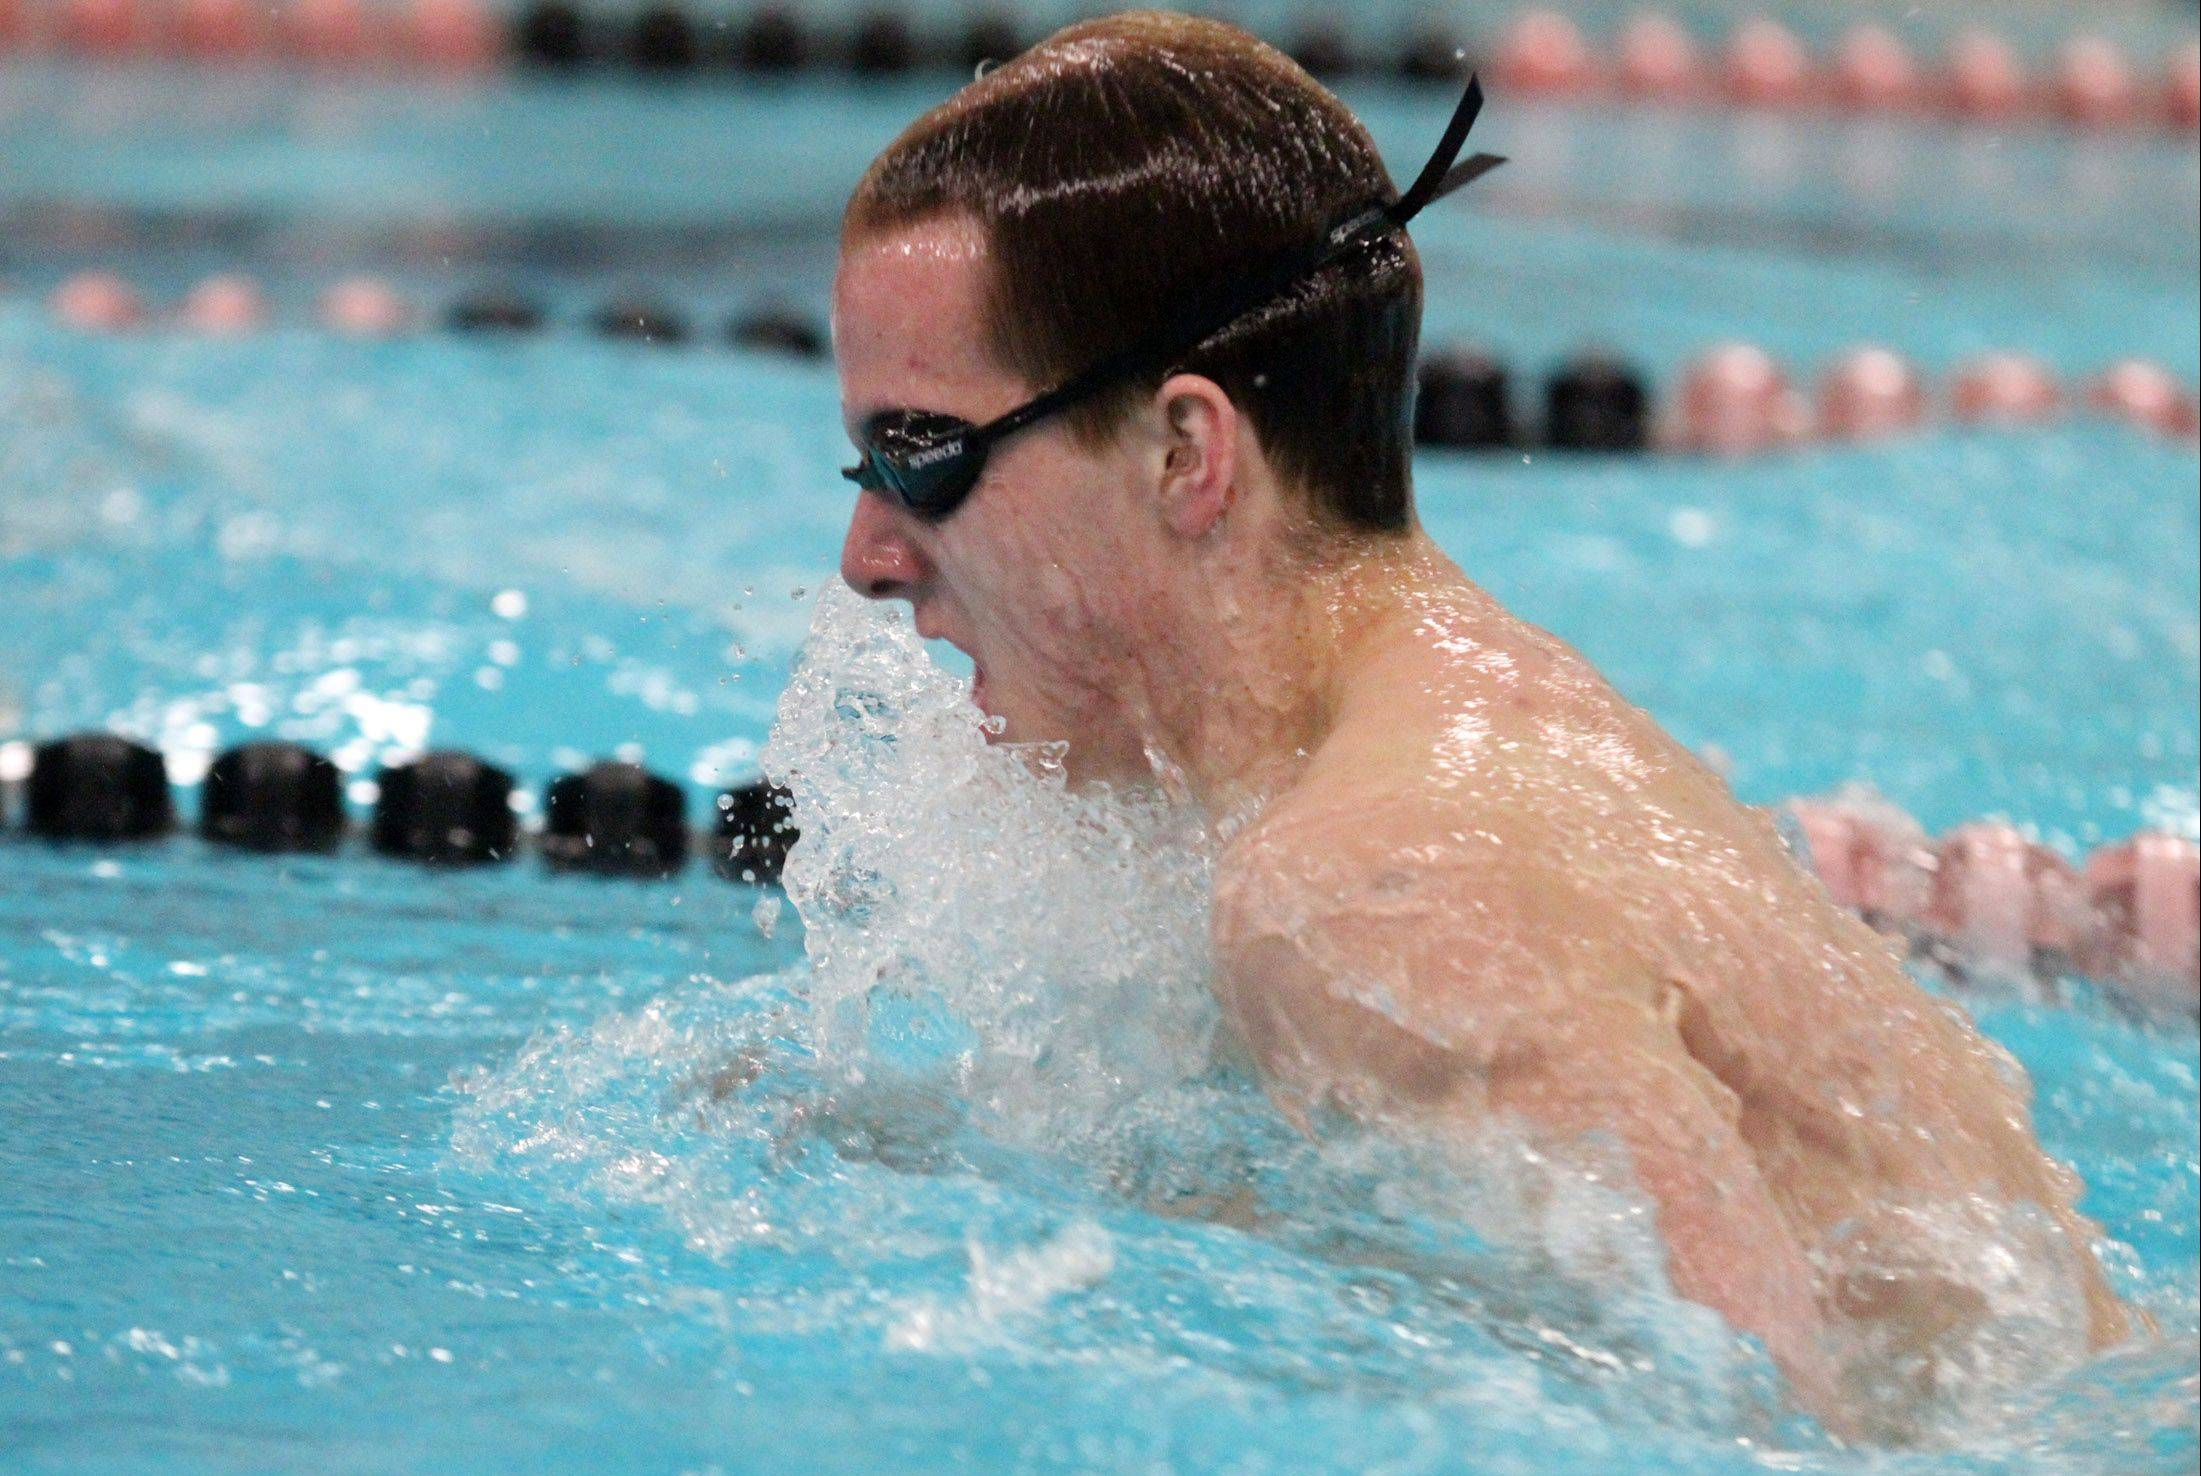 David Chokron swims the breast stoke leg of the 200-yard medley relay for St. Charles North at sectionals last Saturday.